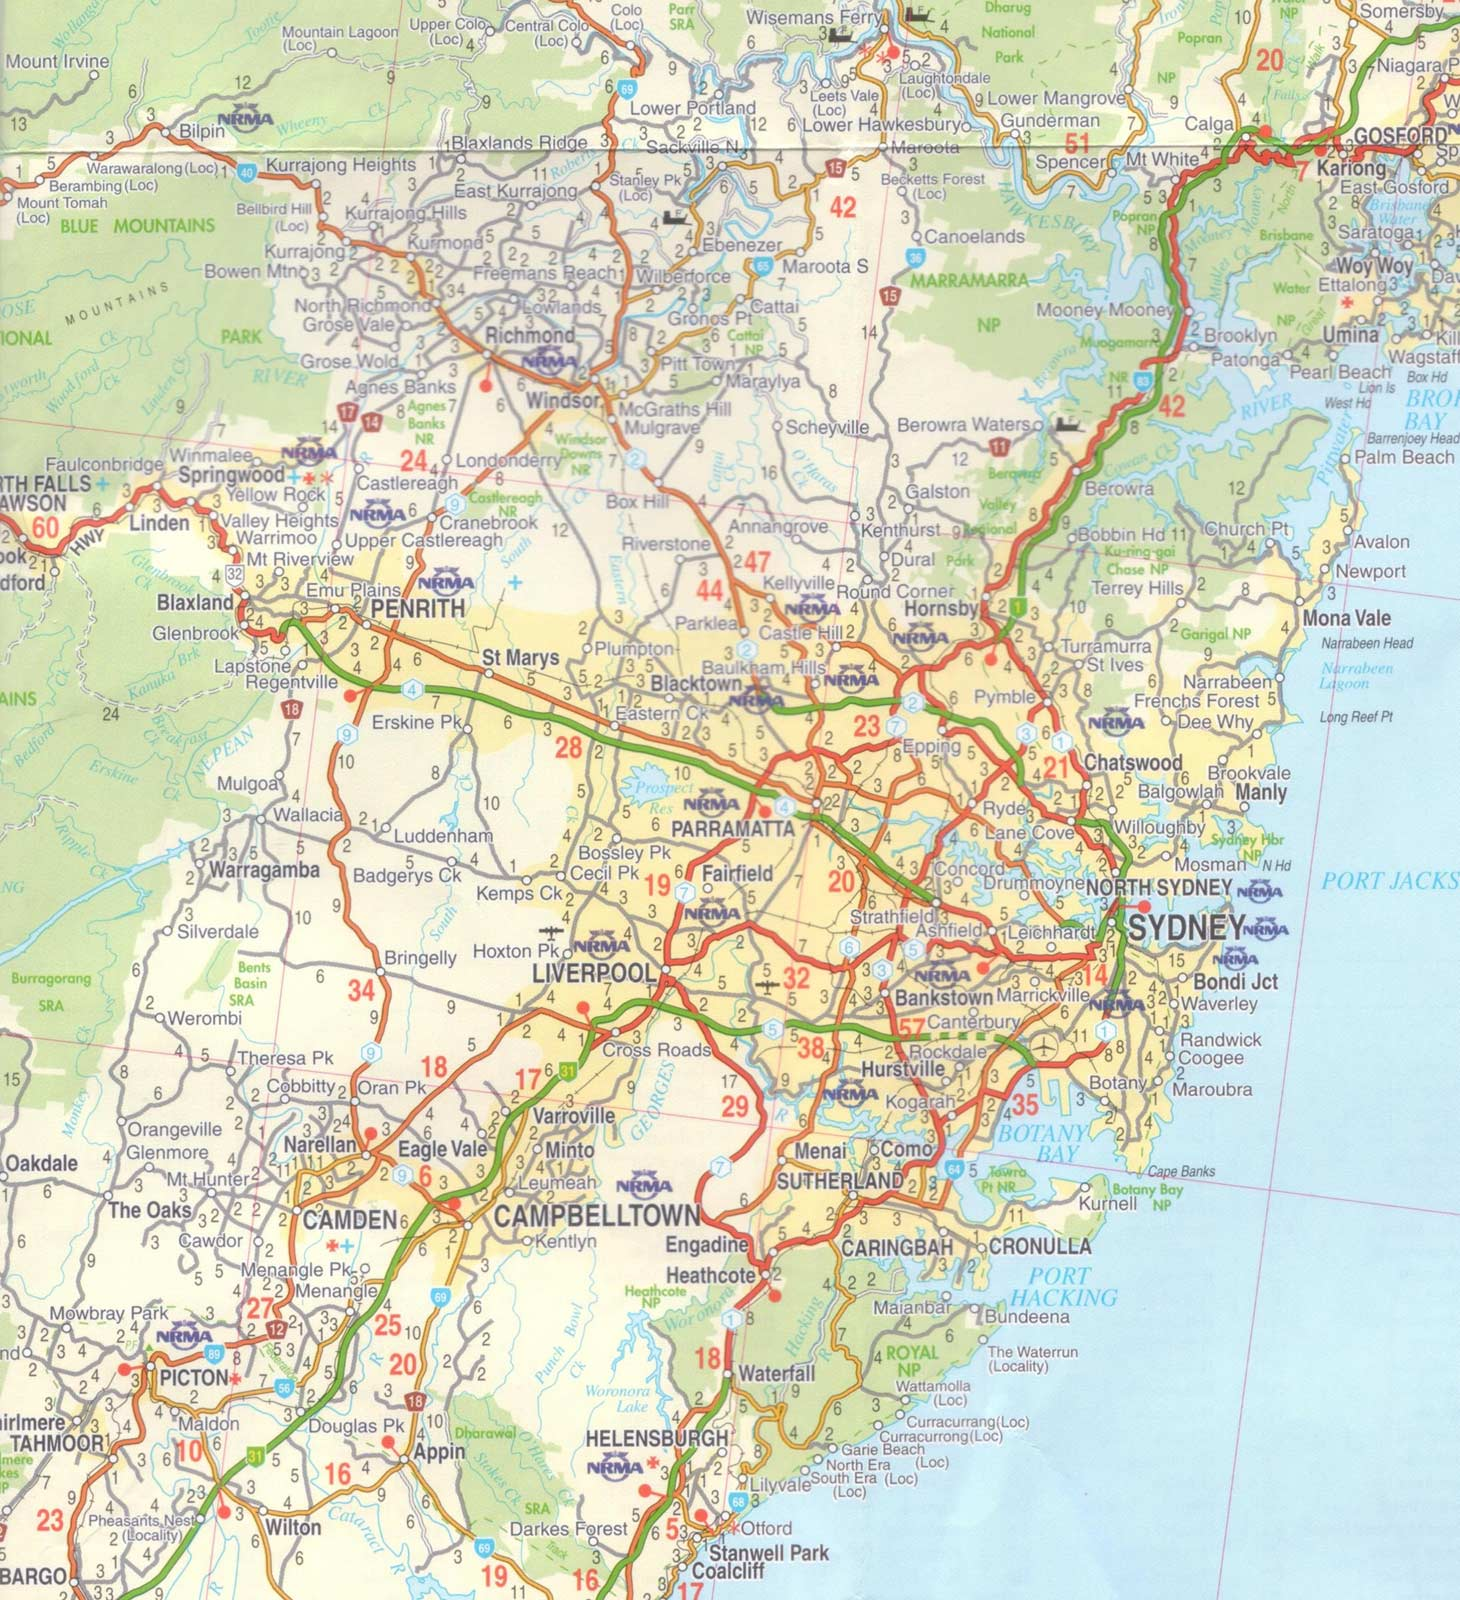 Map of Sydney Mapsofnet